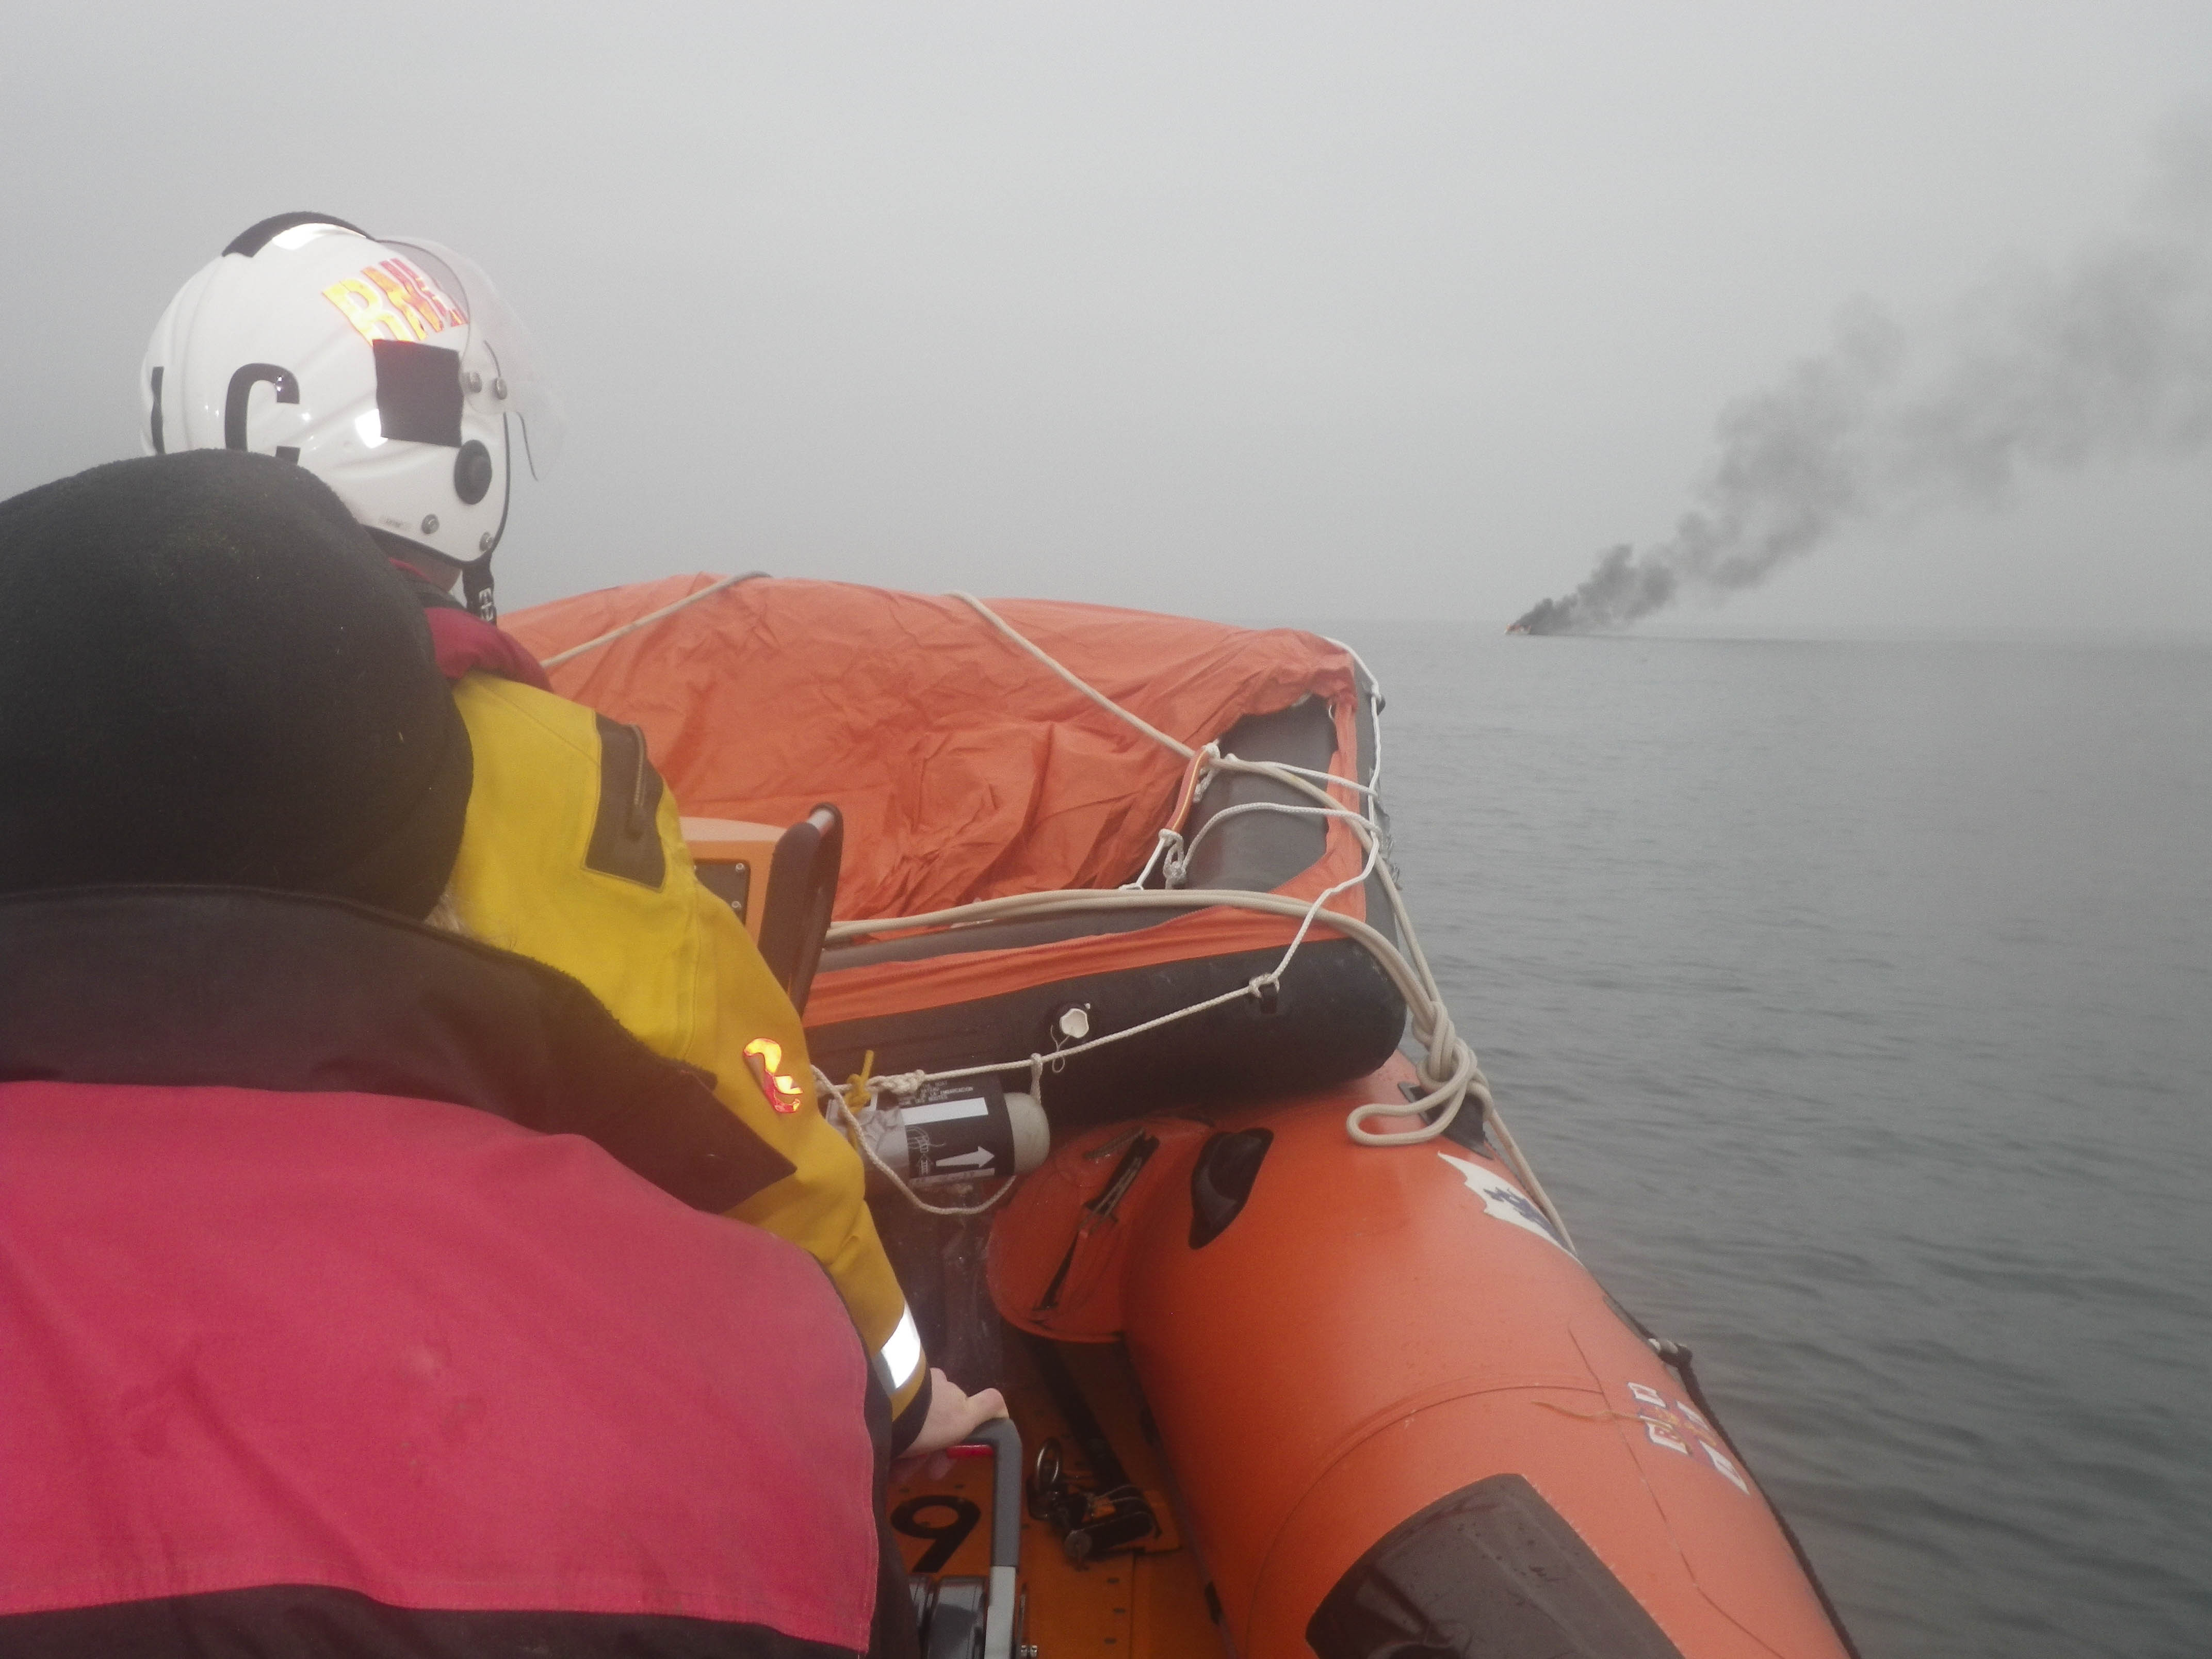 RNLI picture of burning boat